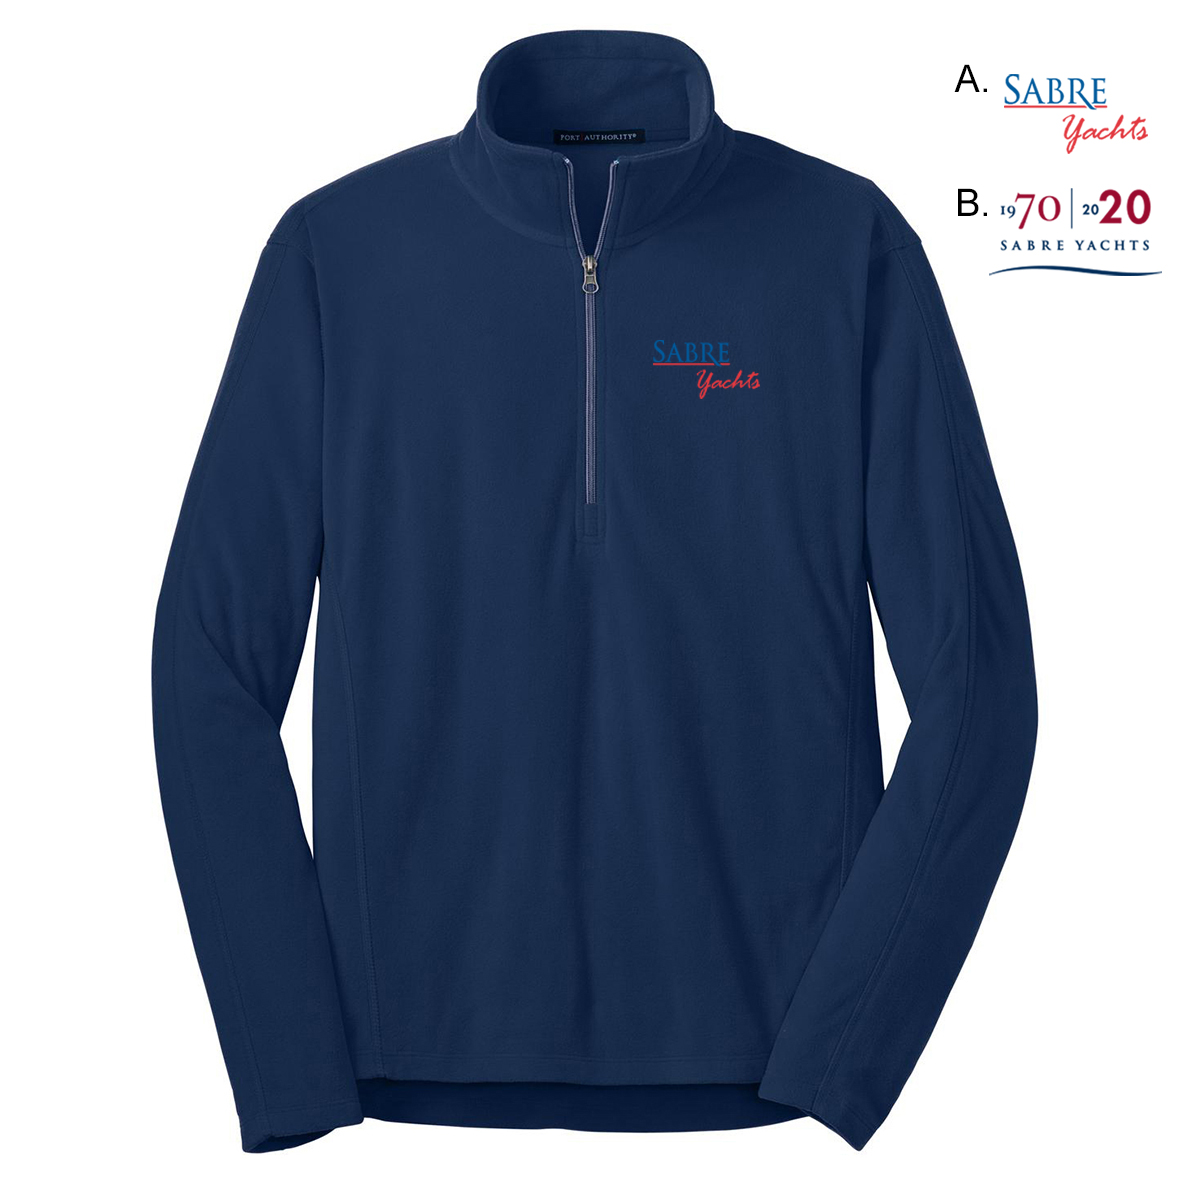 Sabre Yachts - Men's Micro Fleece 1/4 Zip